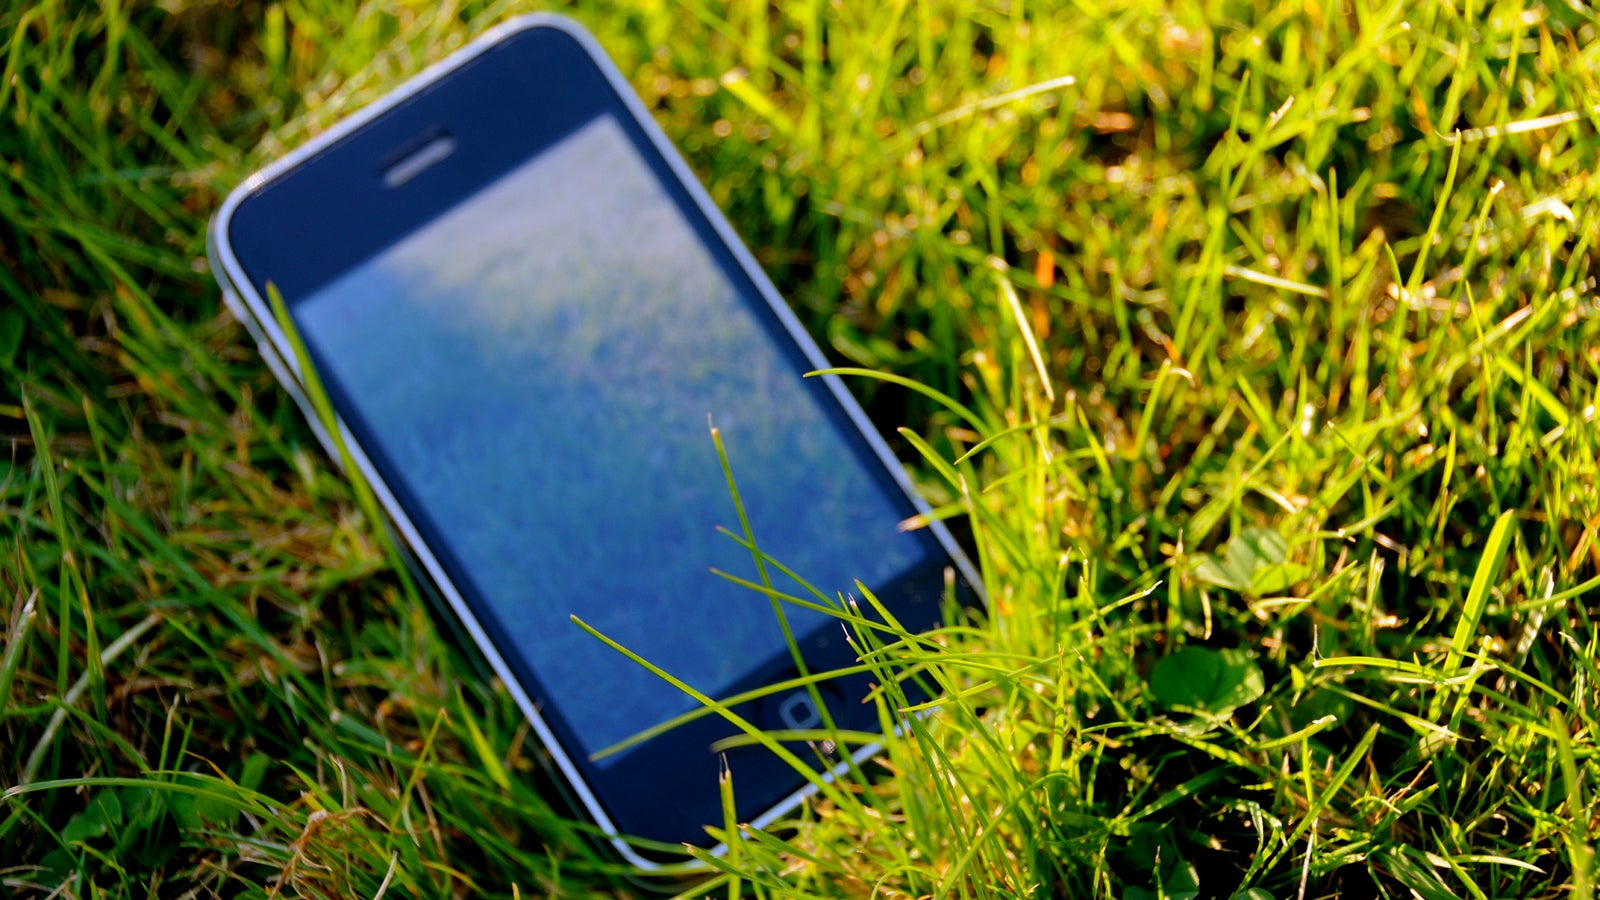 These Dumb Insurance Claims For Lost Cell Phones are Hilarious